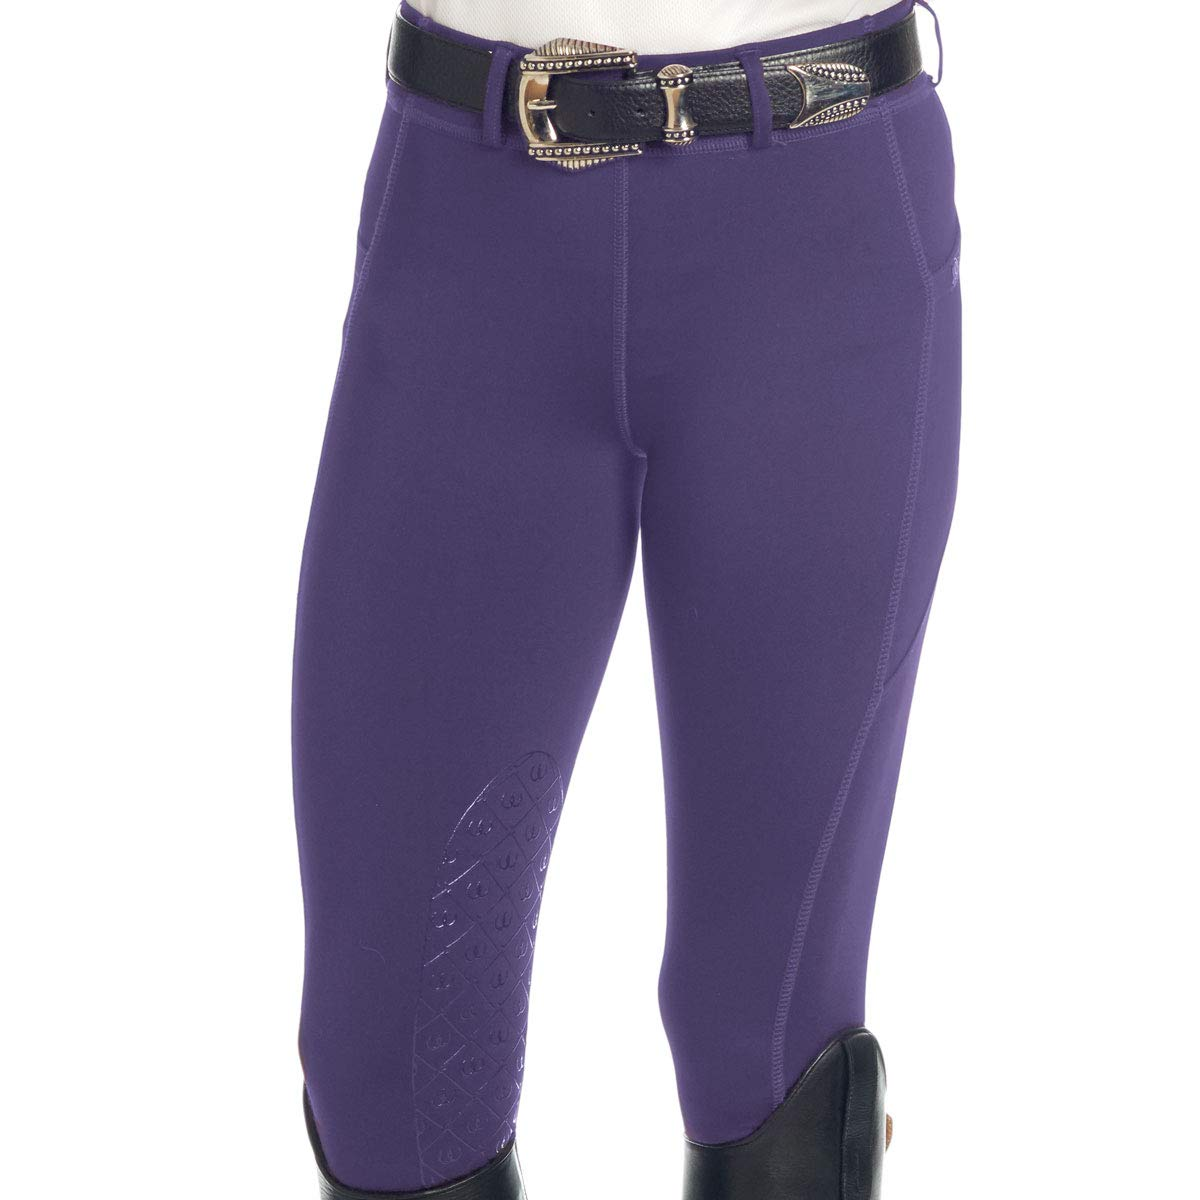 Ovation Ladies AeroWick Silicone Knee Patch Tights